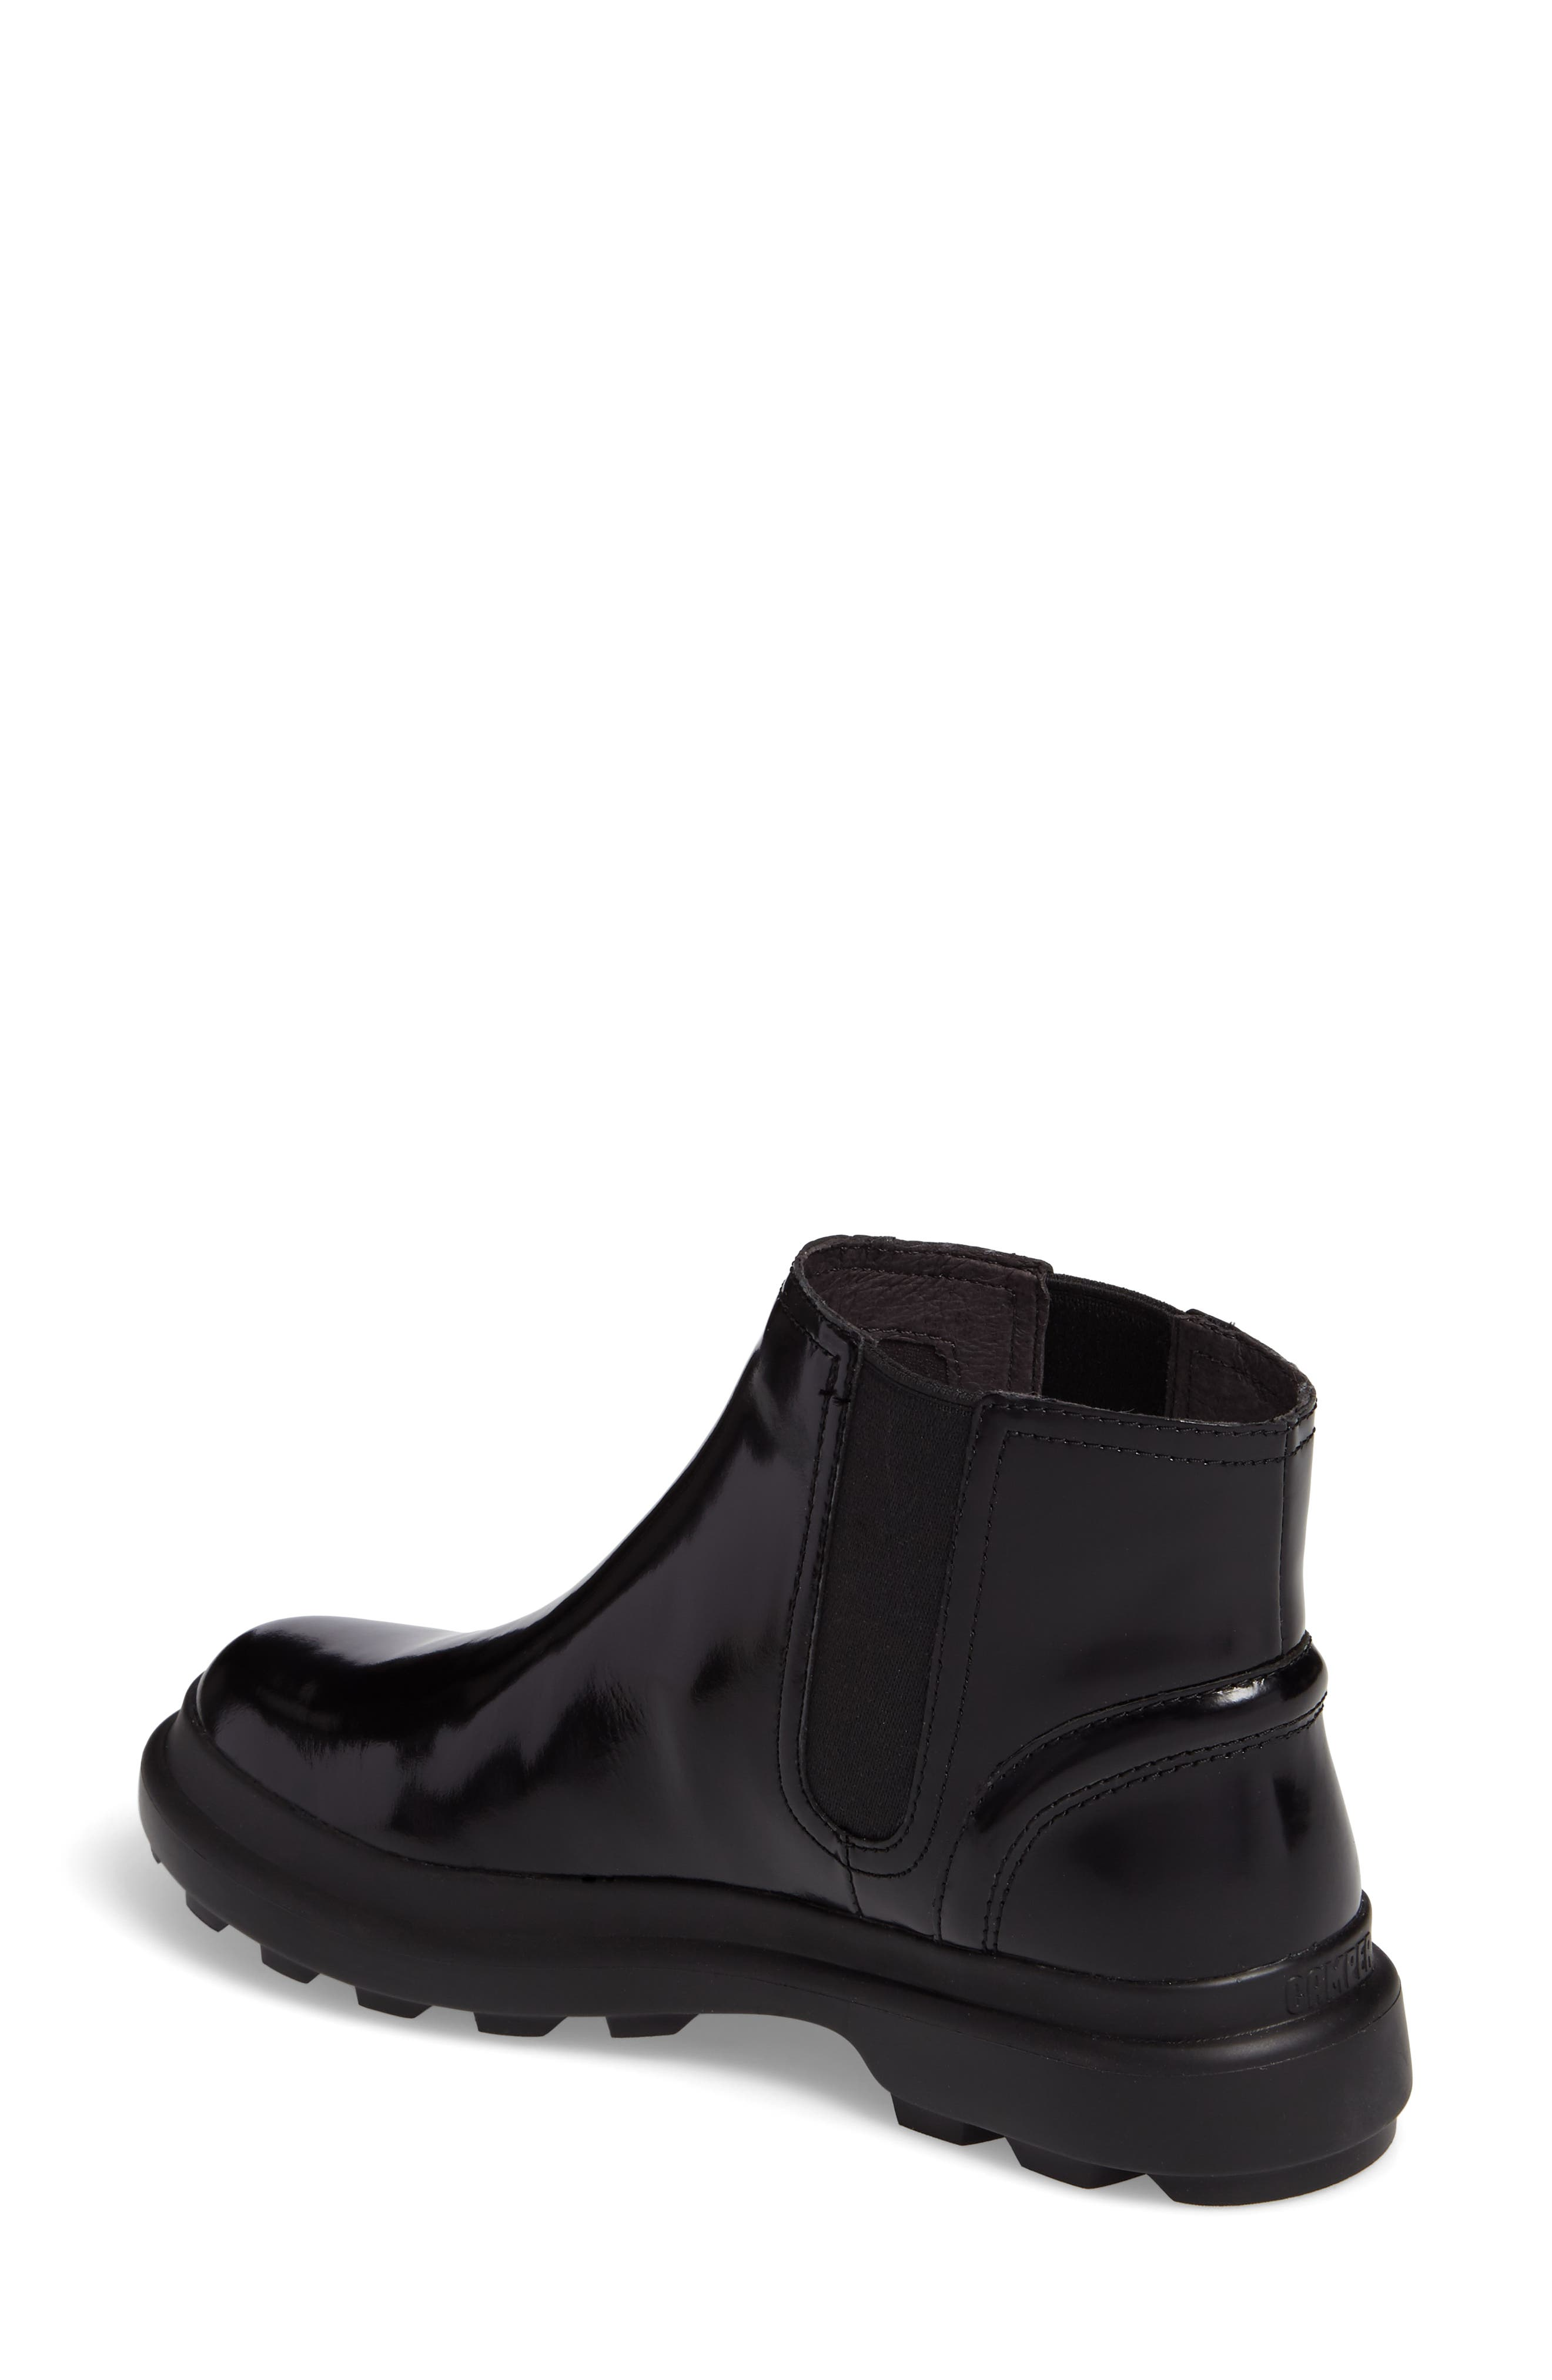 Turtle Lugged Chelsea Boot,                             Alternate thumbnail 2, color,                             001